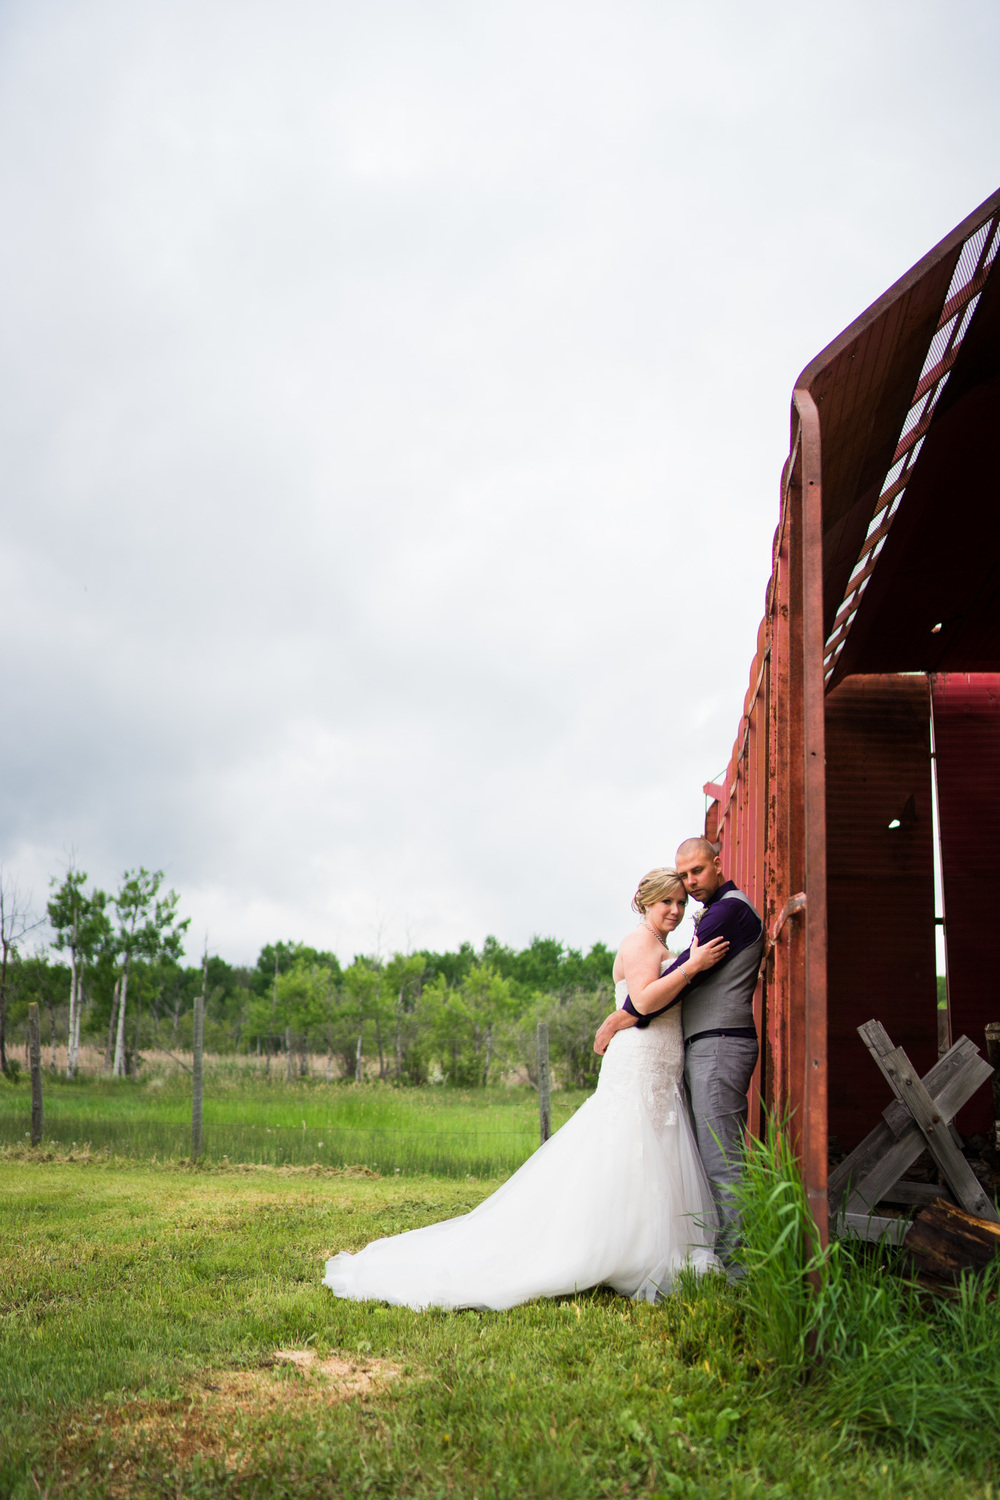 COJO Photo - Whitney and Steve - Wedding-453.jpg